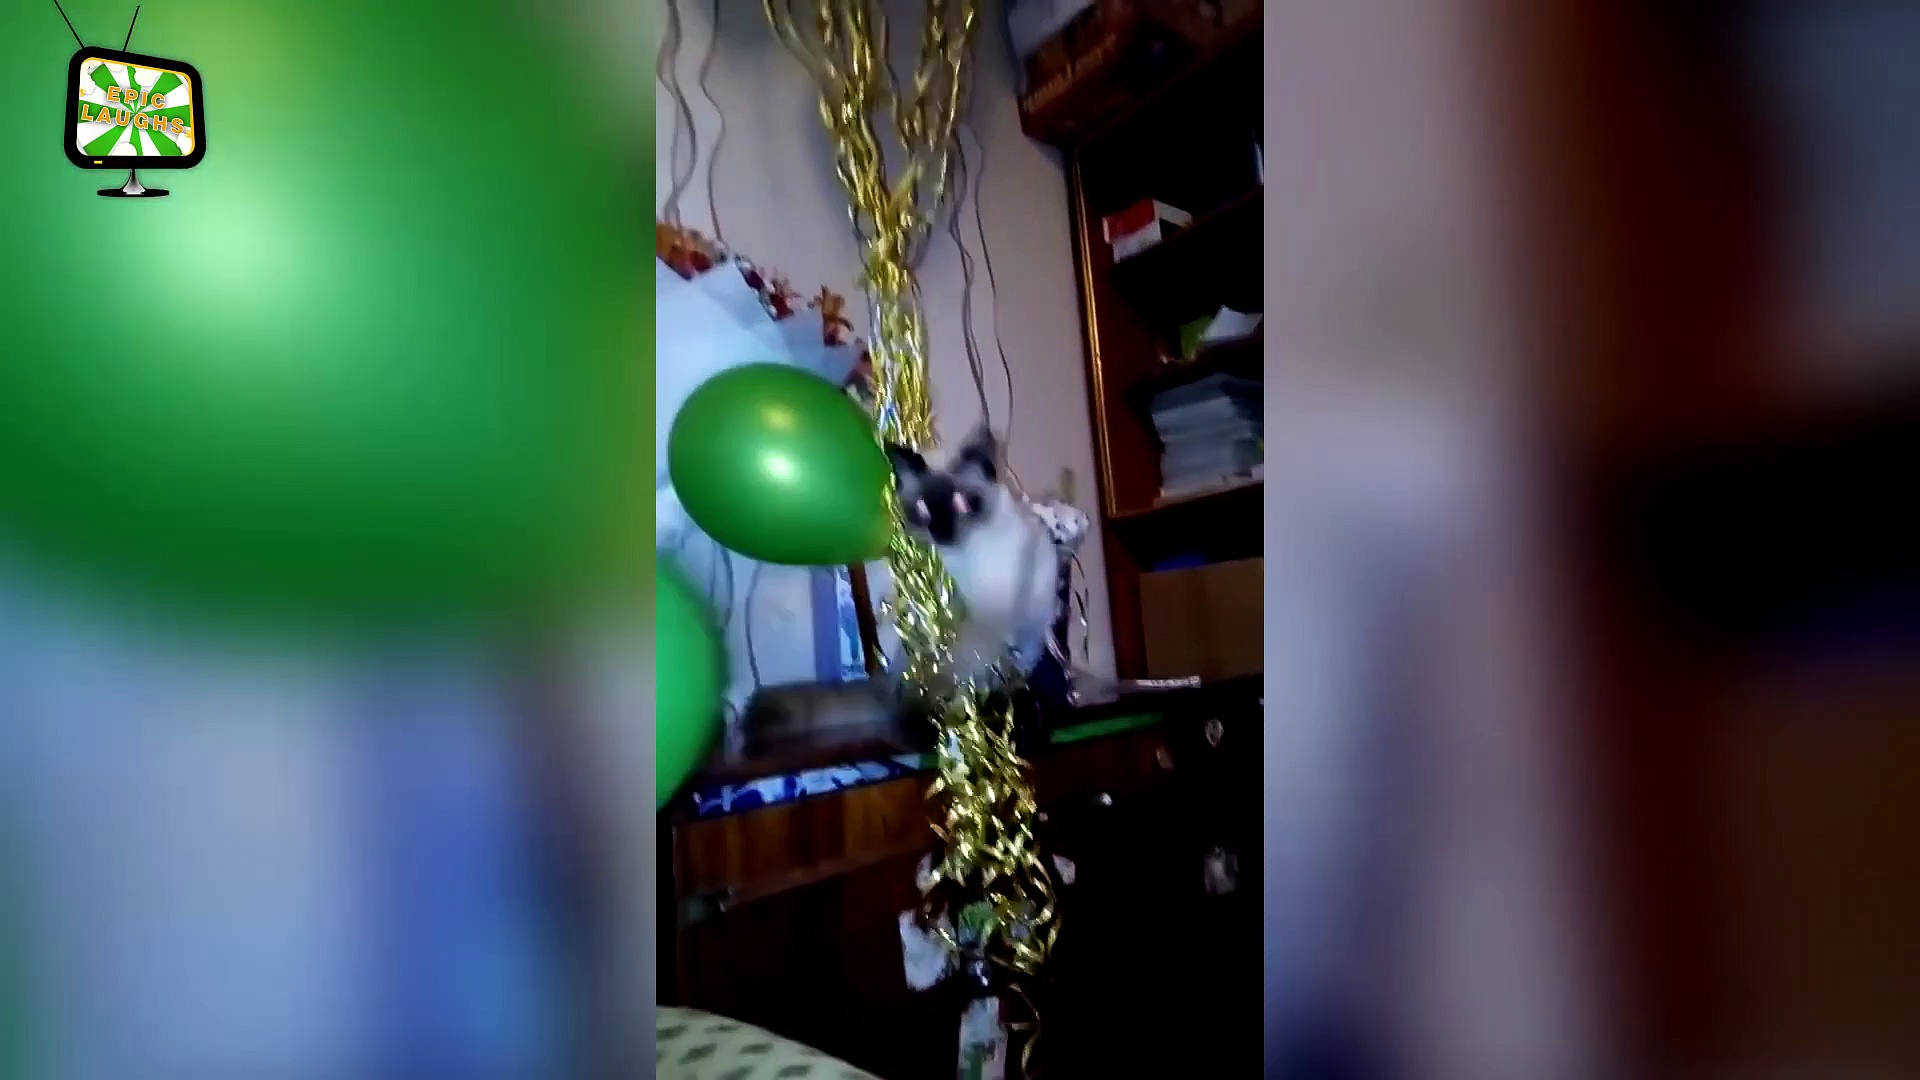 Funny Pets and Balloons  Funny Pets Playing (Full) [Epic Laughs]